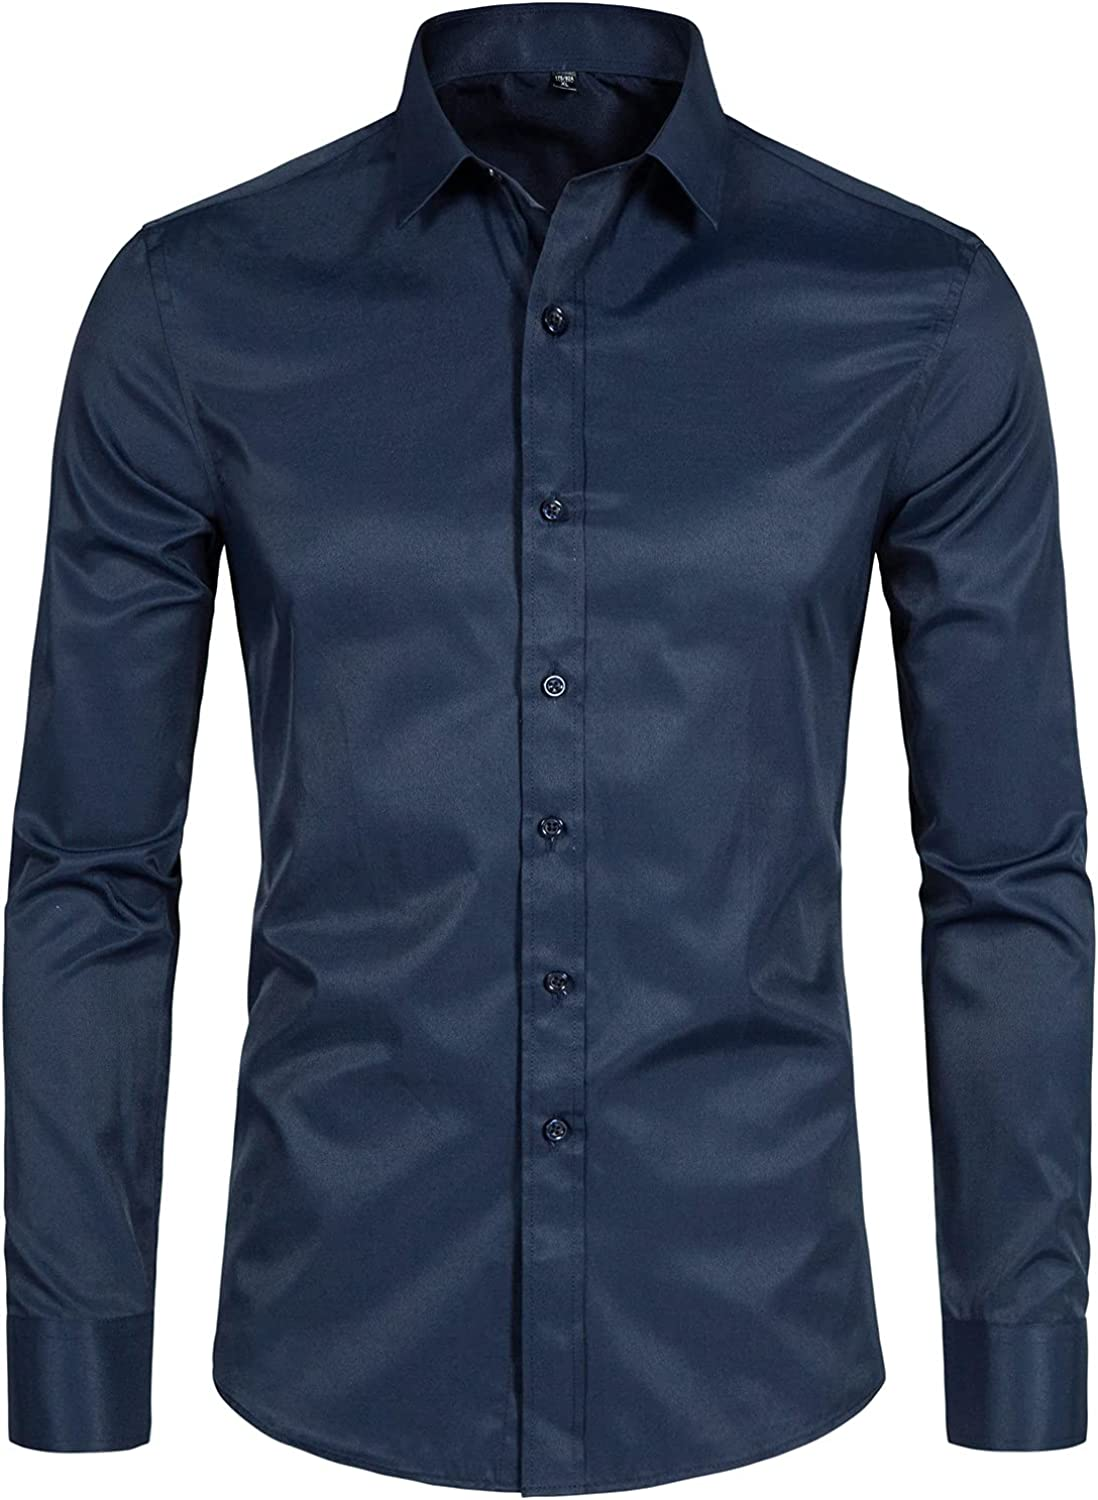 DELCARINO Men's Long Sleeve Button Up Casu Some reservation Fit New York Mall Slim Shirts Solid